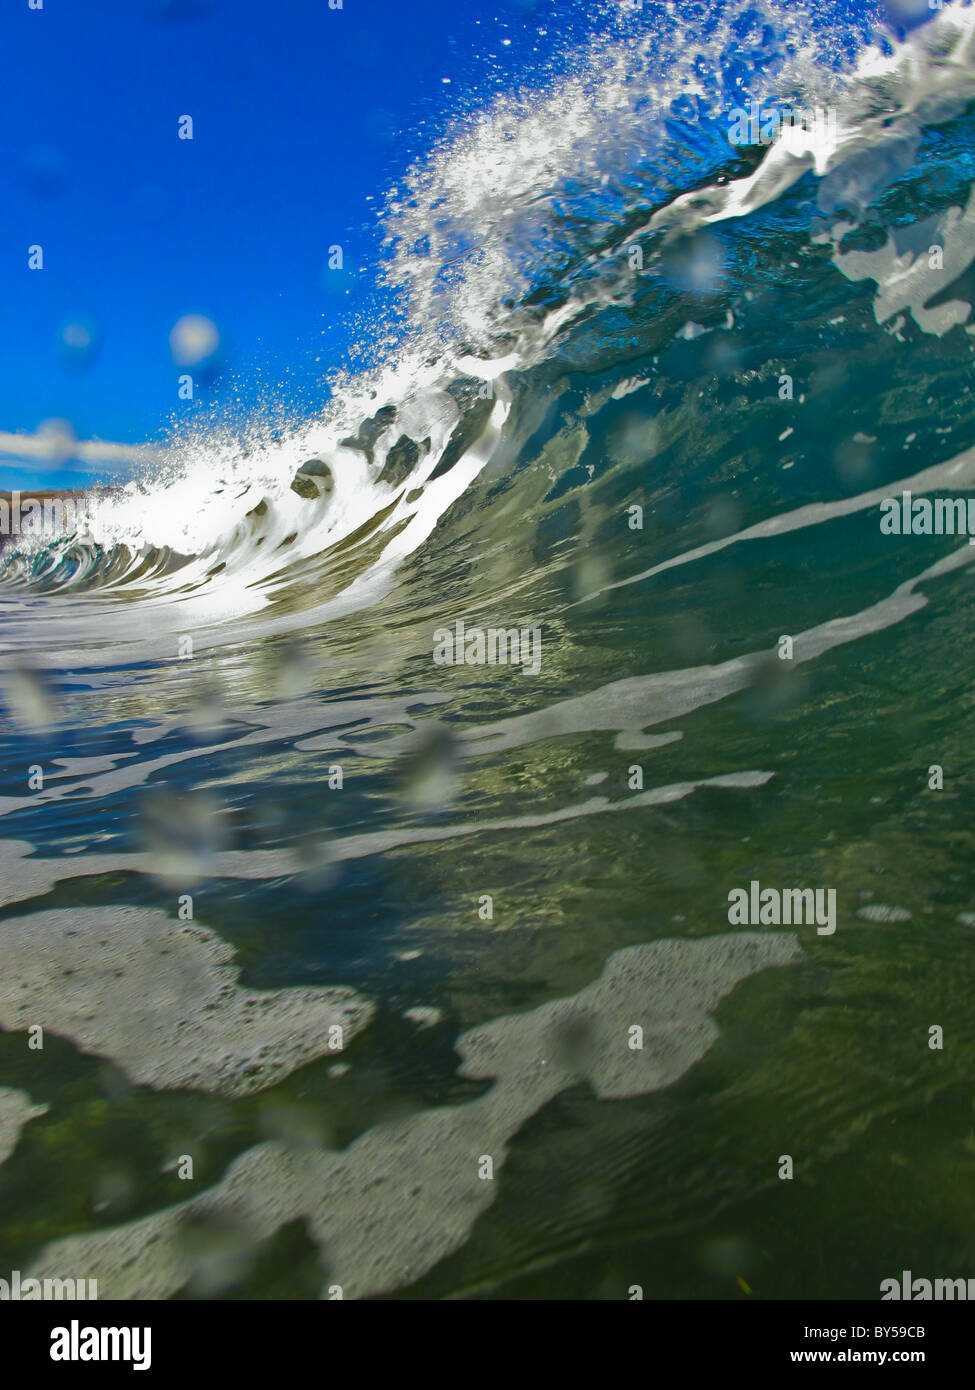 Breaking wave viewed from inside the water - Stock Image